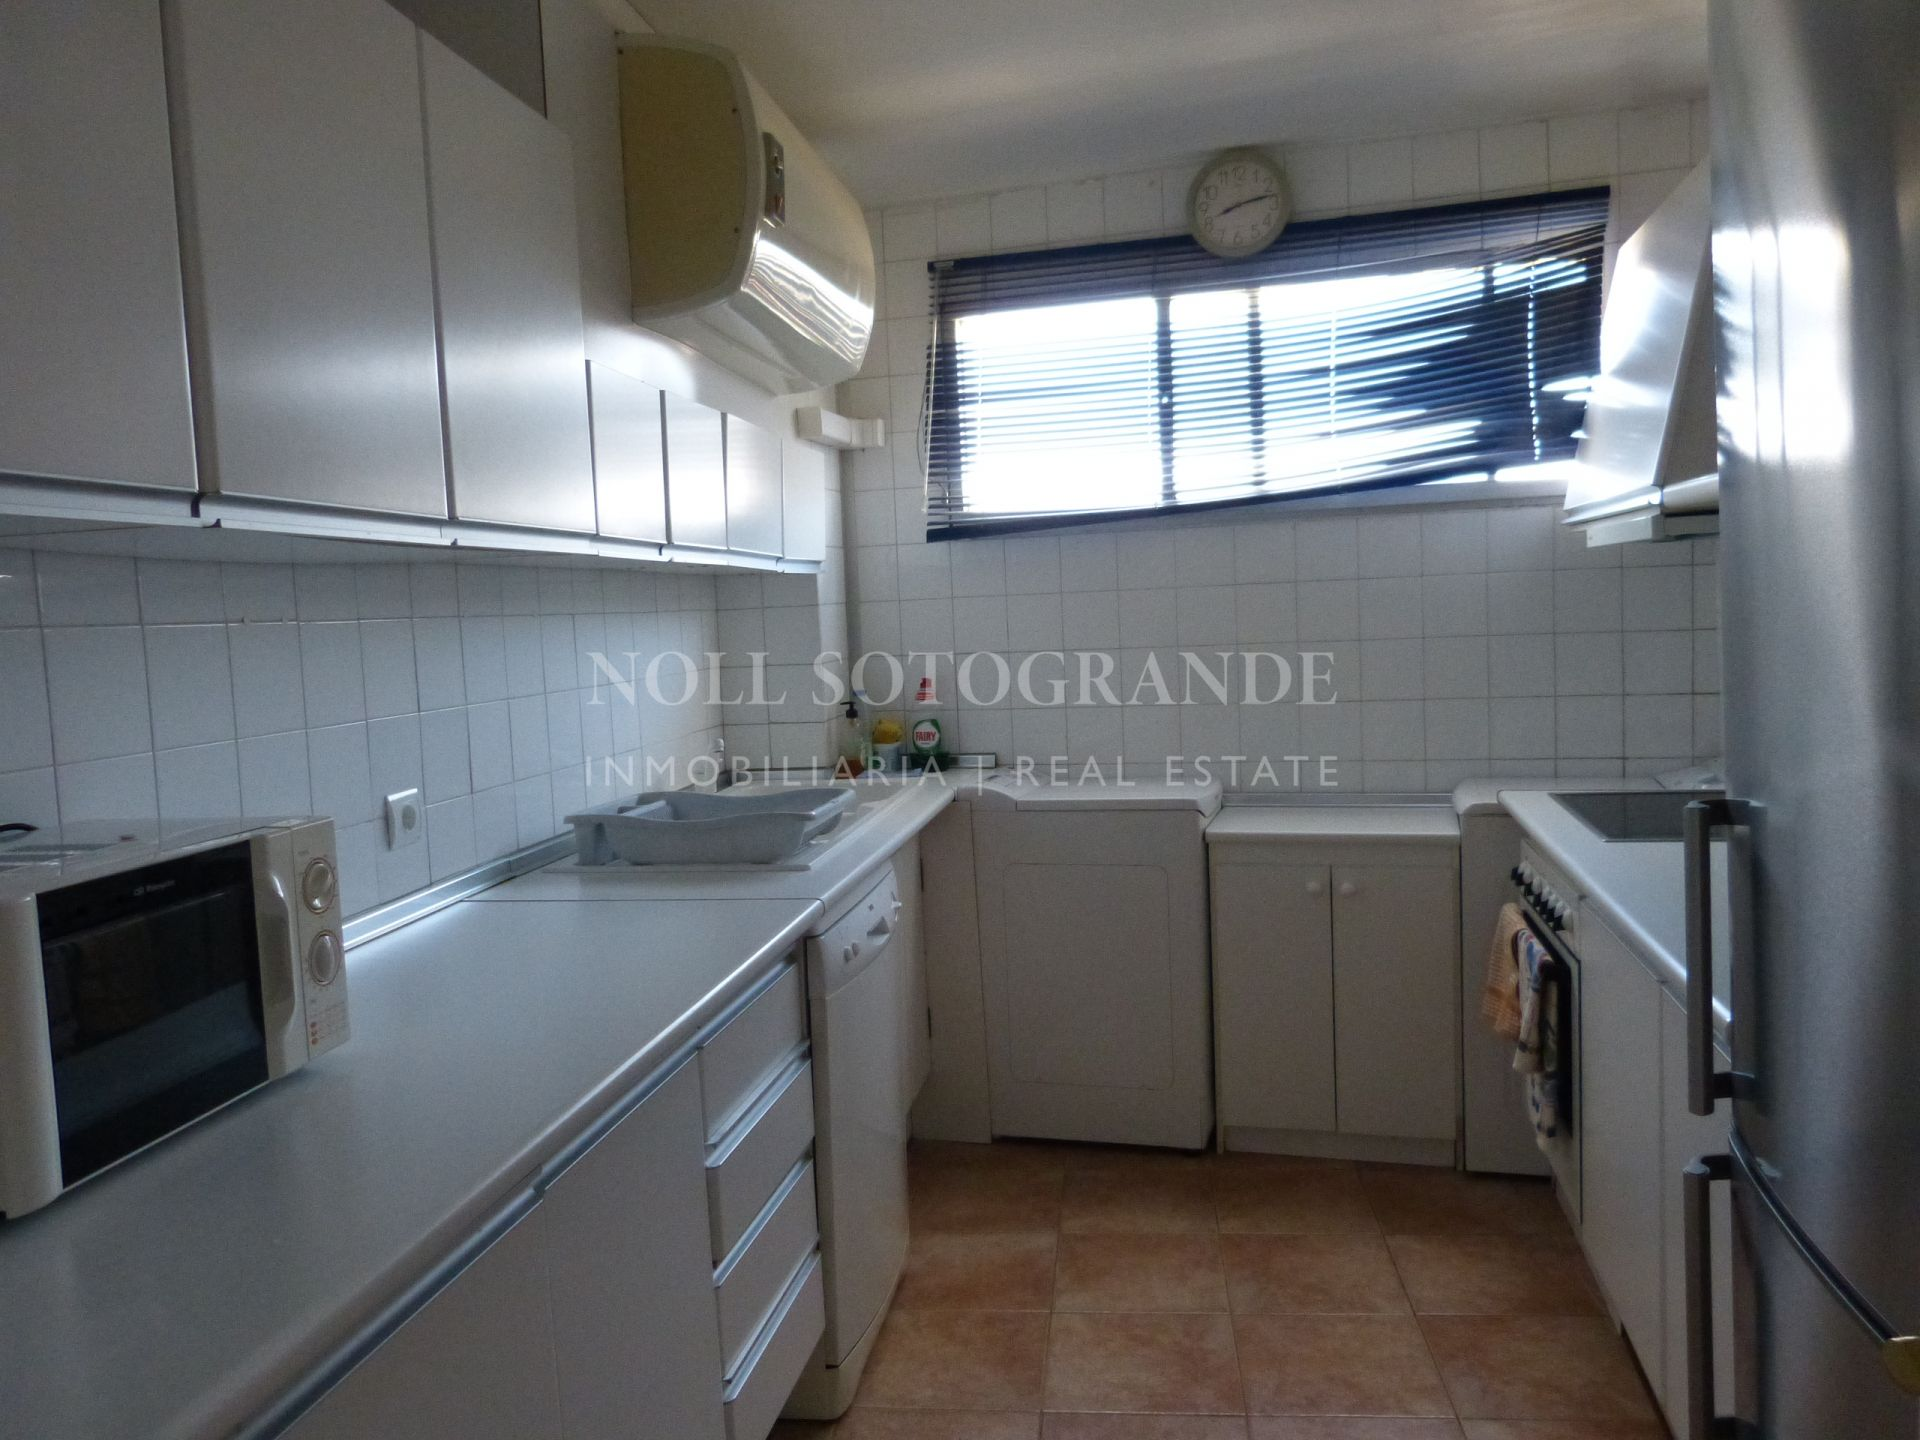 Top floor apartment in Torreguadiaro tower block